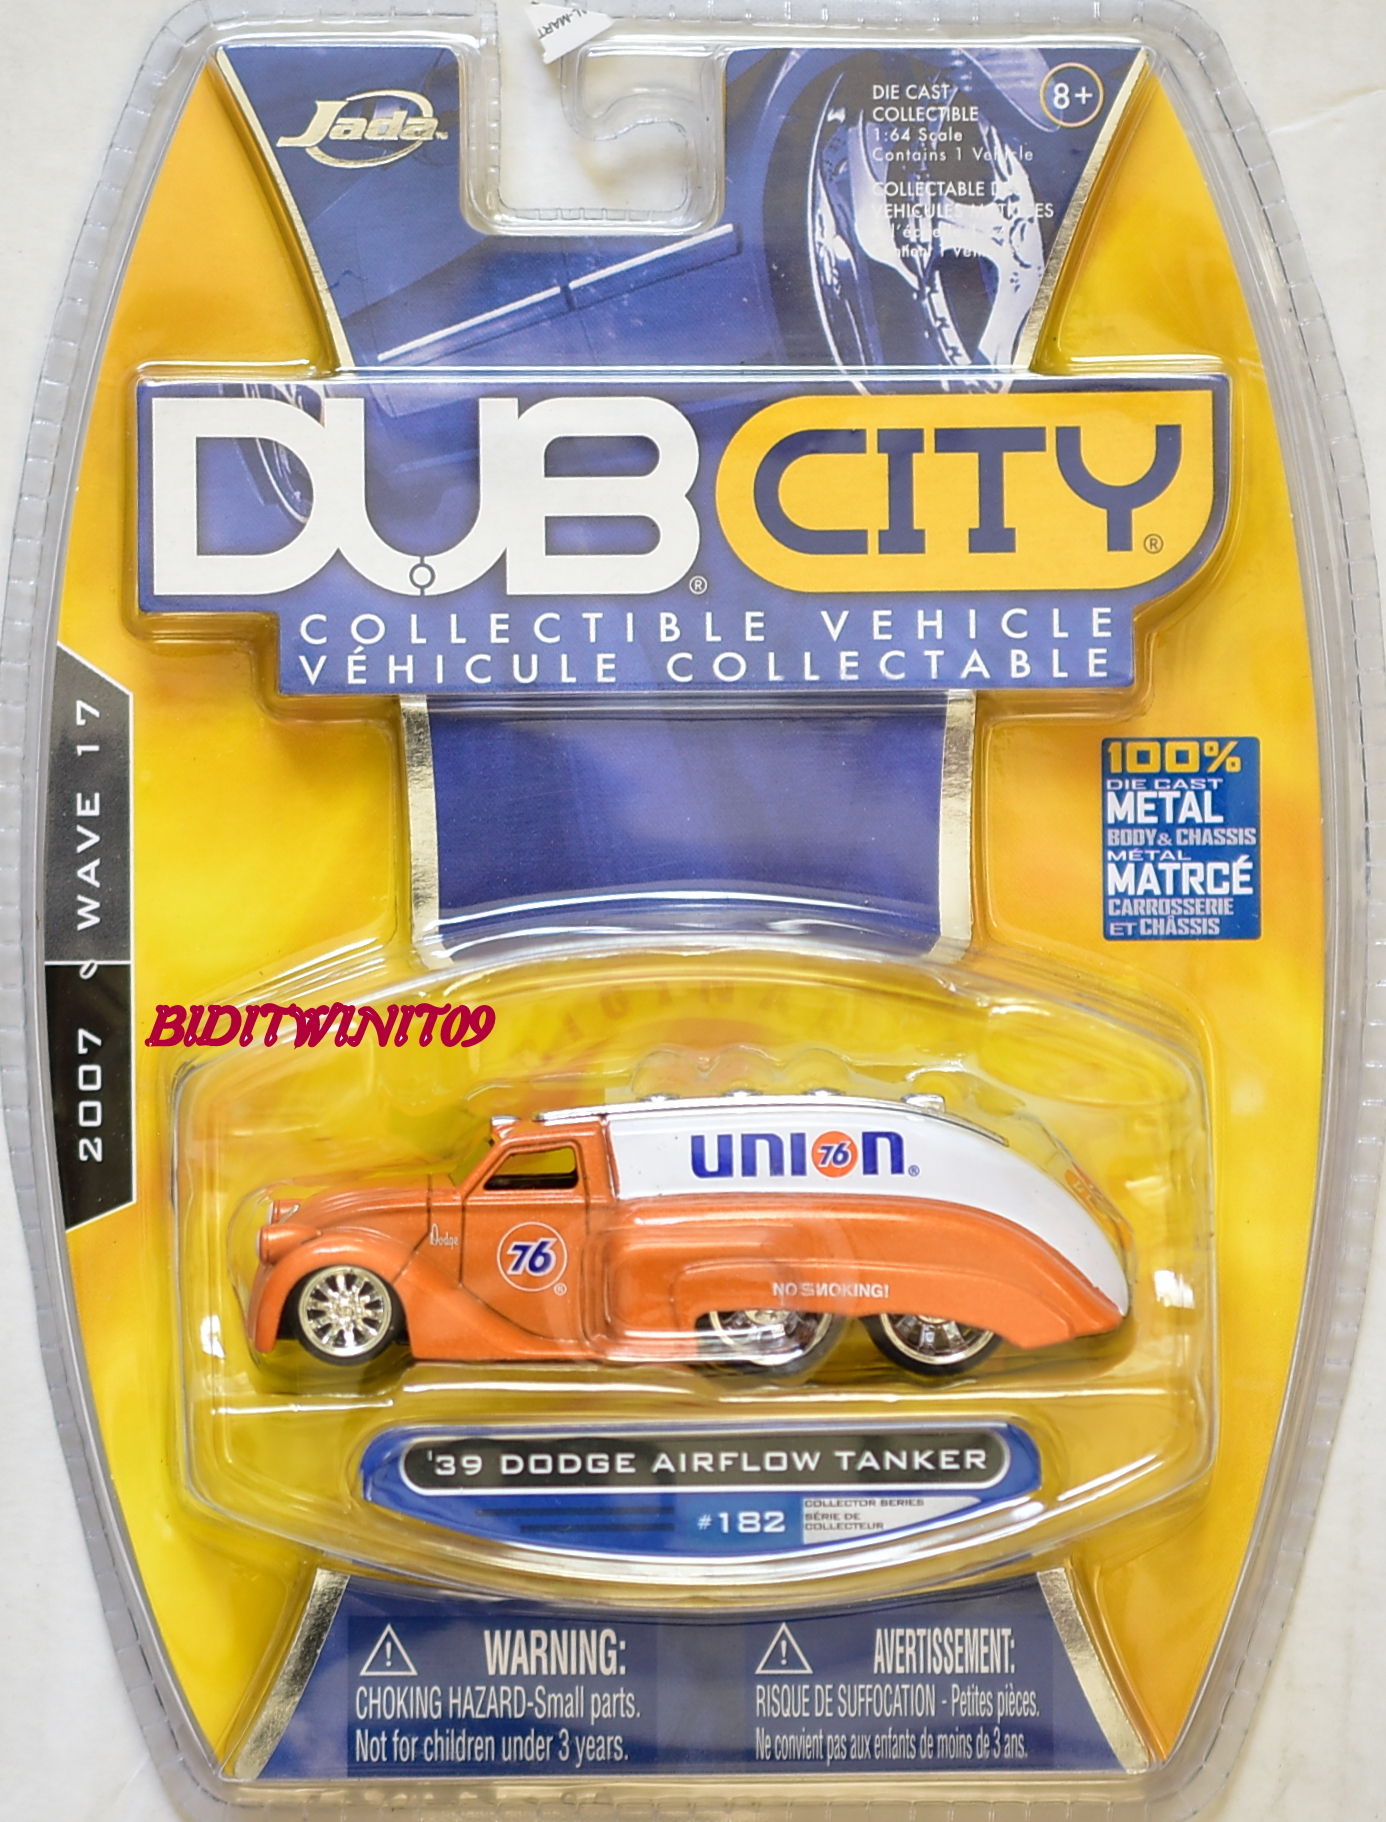 JADA TOYS 2007 WAVE 17 DUB CITY '39 DODGE AIRFLOW TANKER #182 E+